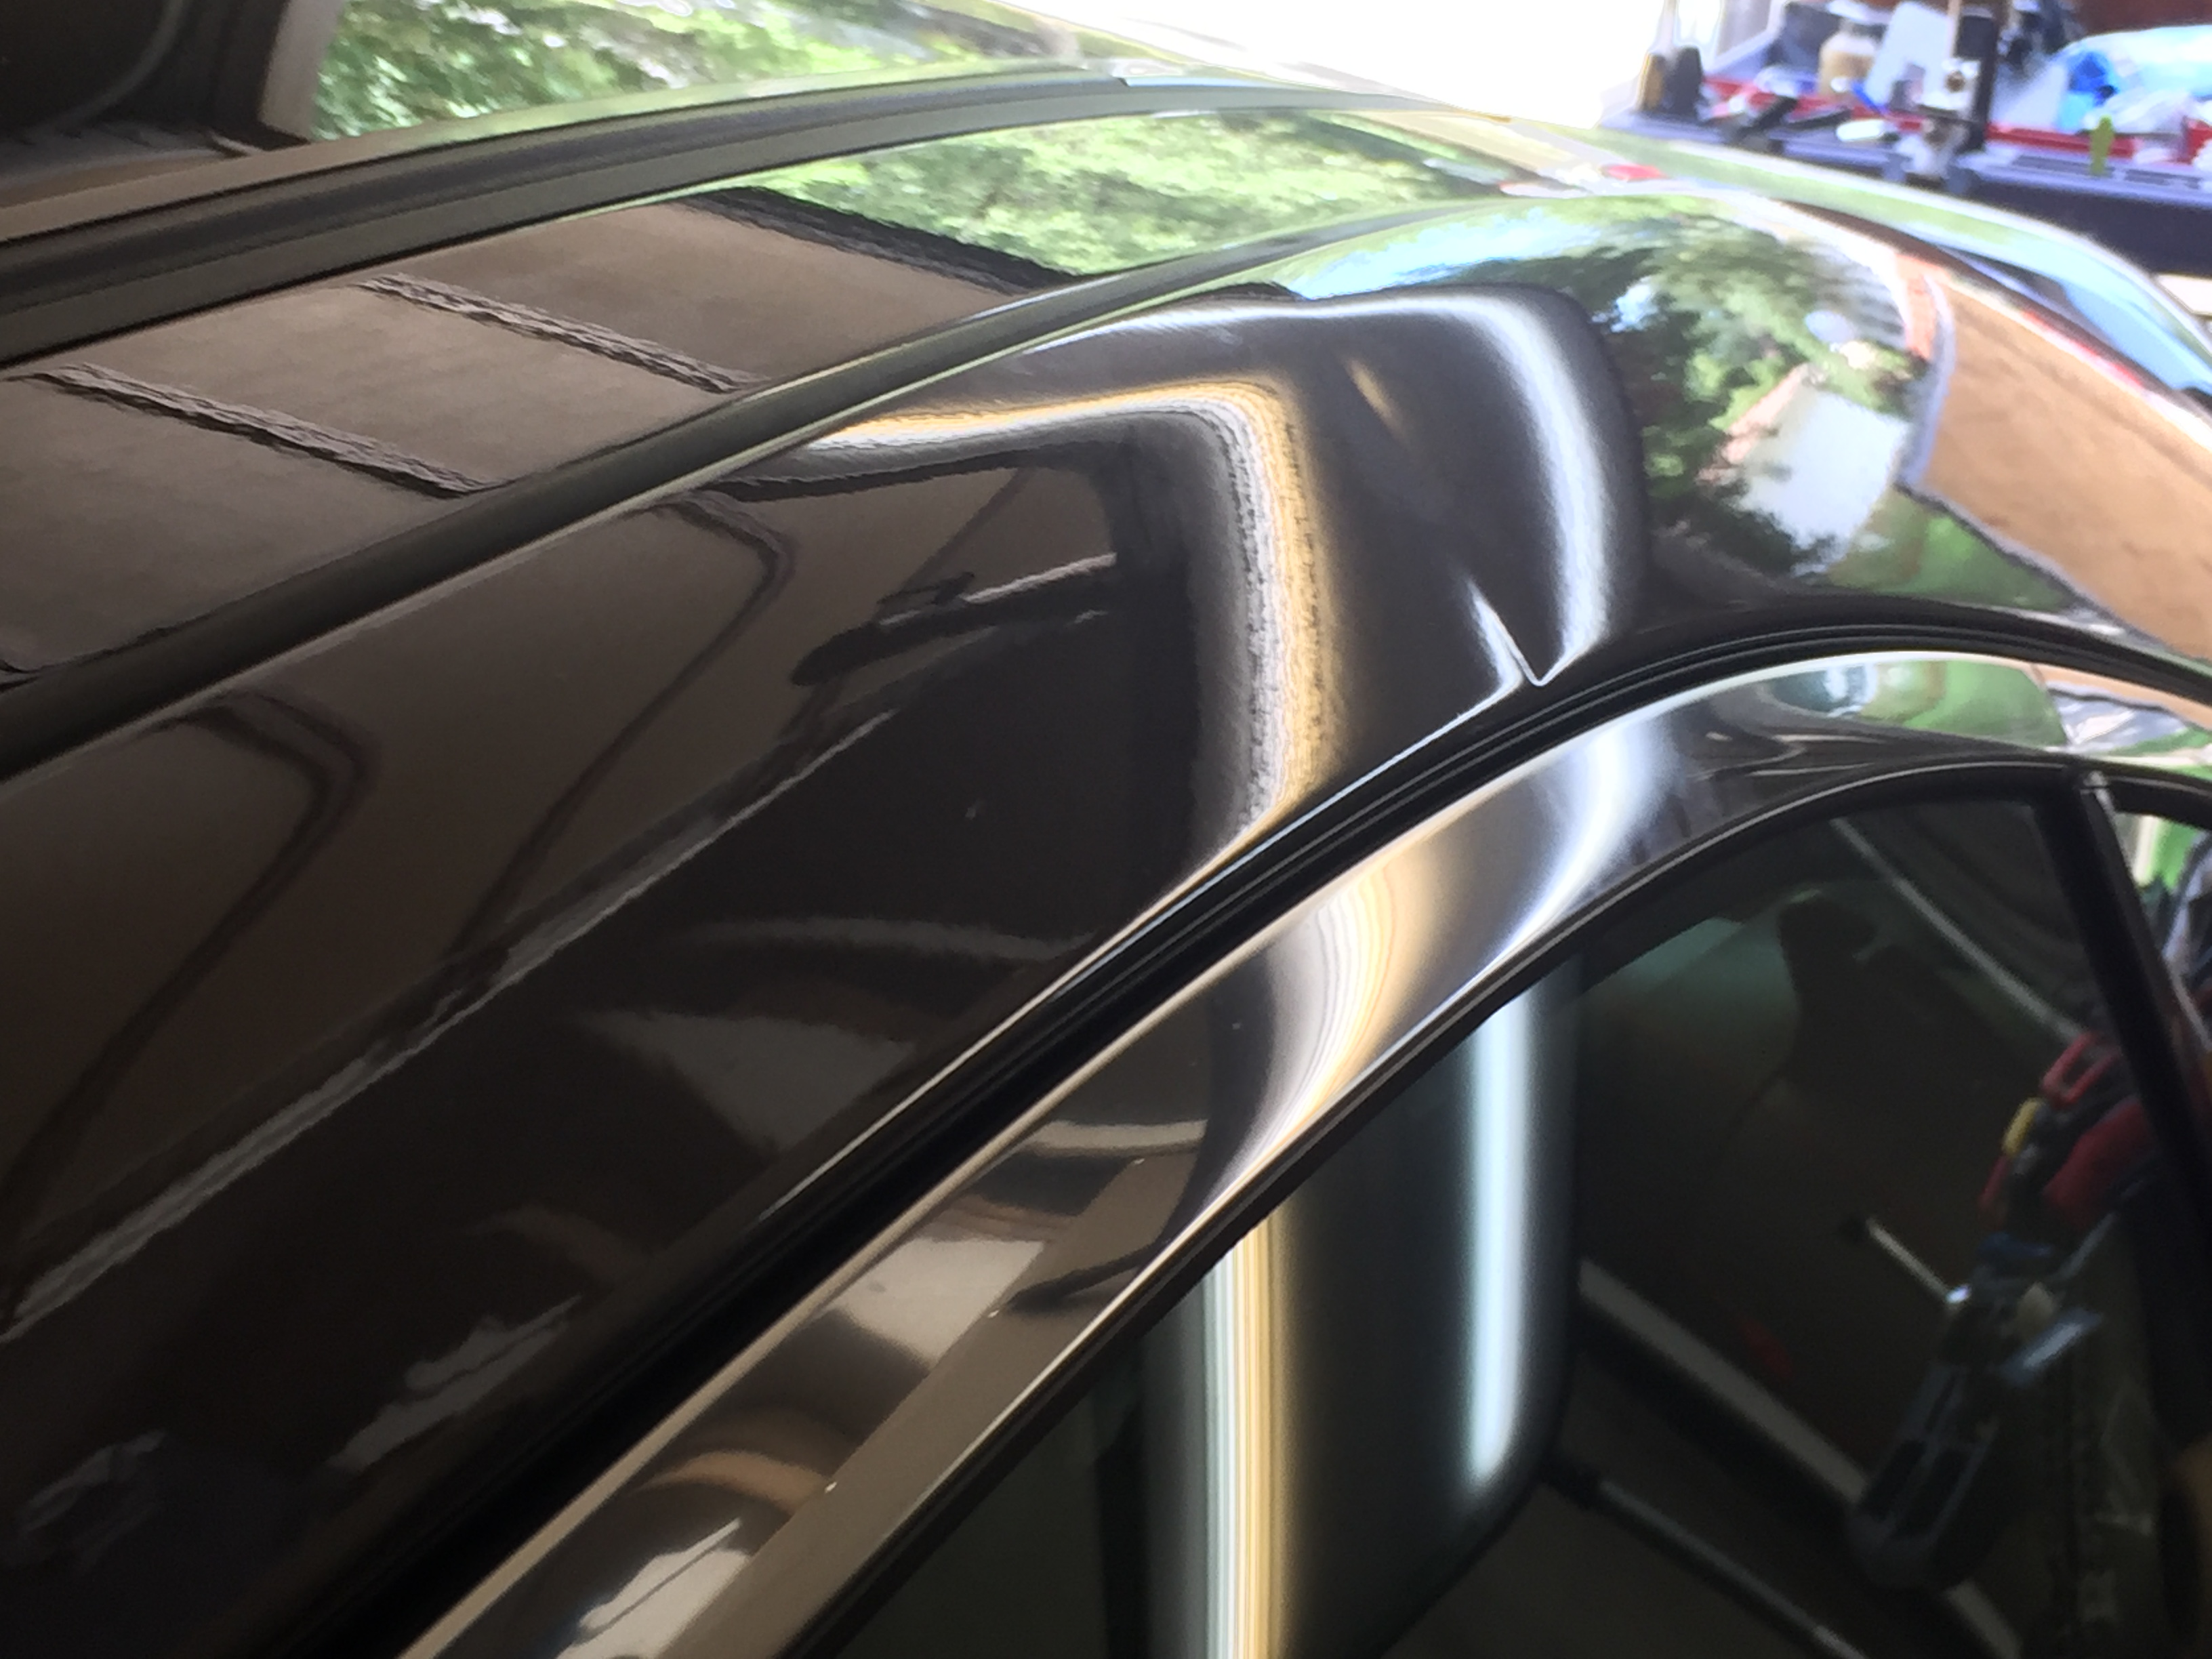 2013 Nissan Maxima Roof Rail Springfield Il Paintless